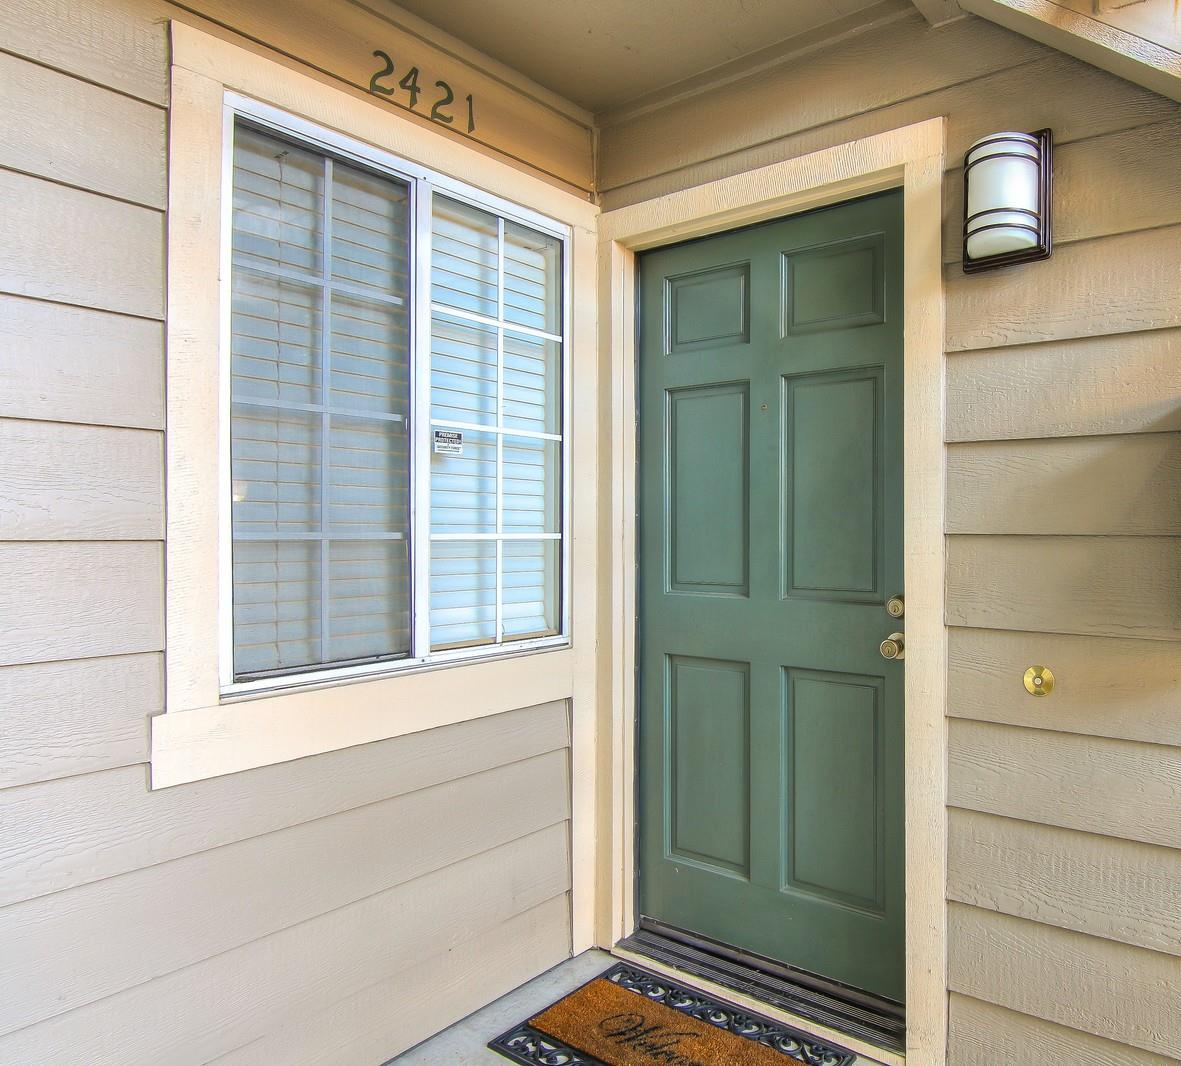 Detail Gallery Image 1 of 20 For 2421 Jubilee Ln, San Jose, CA, 95131 - 1 Beds | 1 Baths